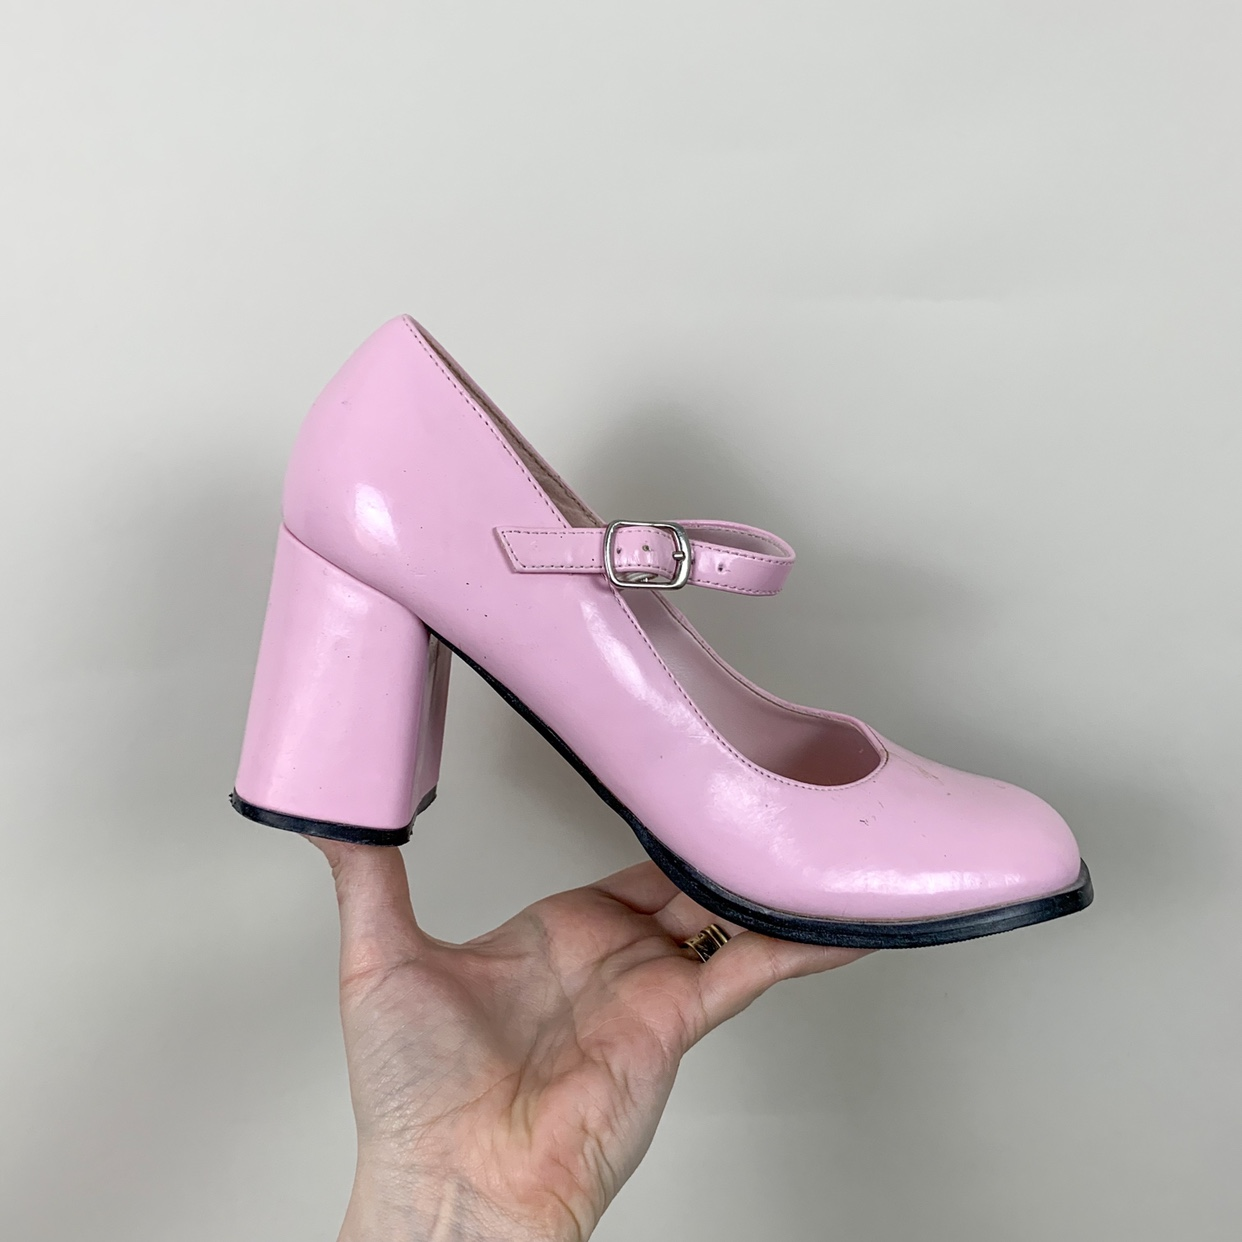 Vintage pink patent mary jane shoes